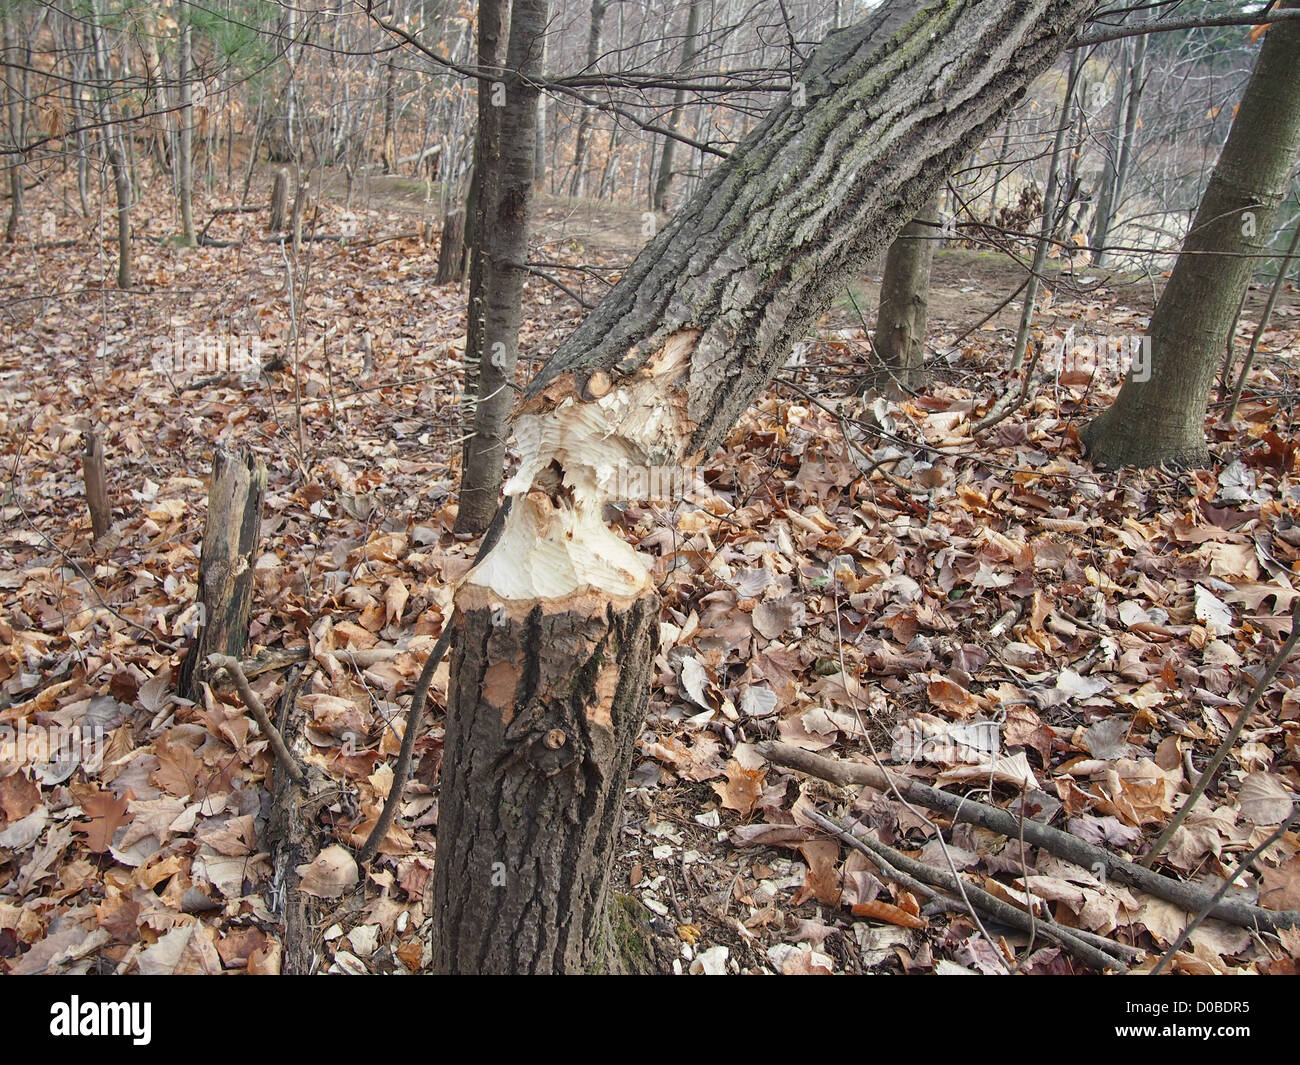 Tree felled by North American Beaver - Stock Image